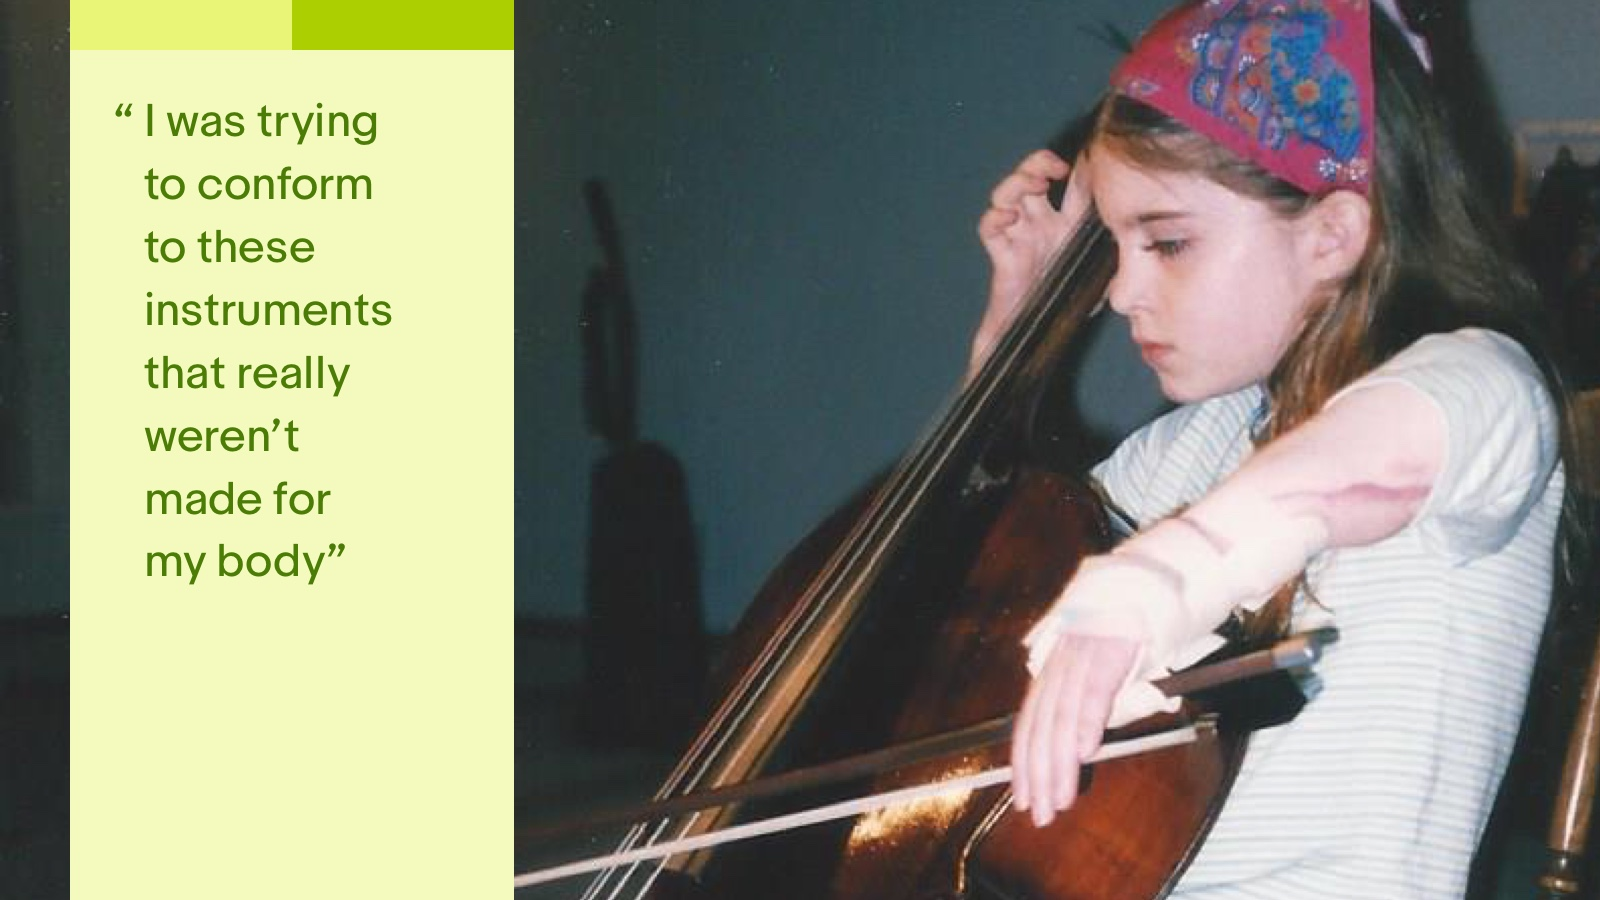 Molly, a white girl with short brown hair at eight years old, sitting in a brown wooden chair with a splint on her scarred left hand/arm which is attached to a cello bow. She is holding a brown cello, with her right hand on the cello fingerboard.